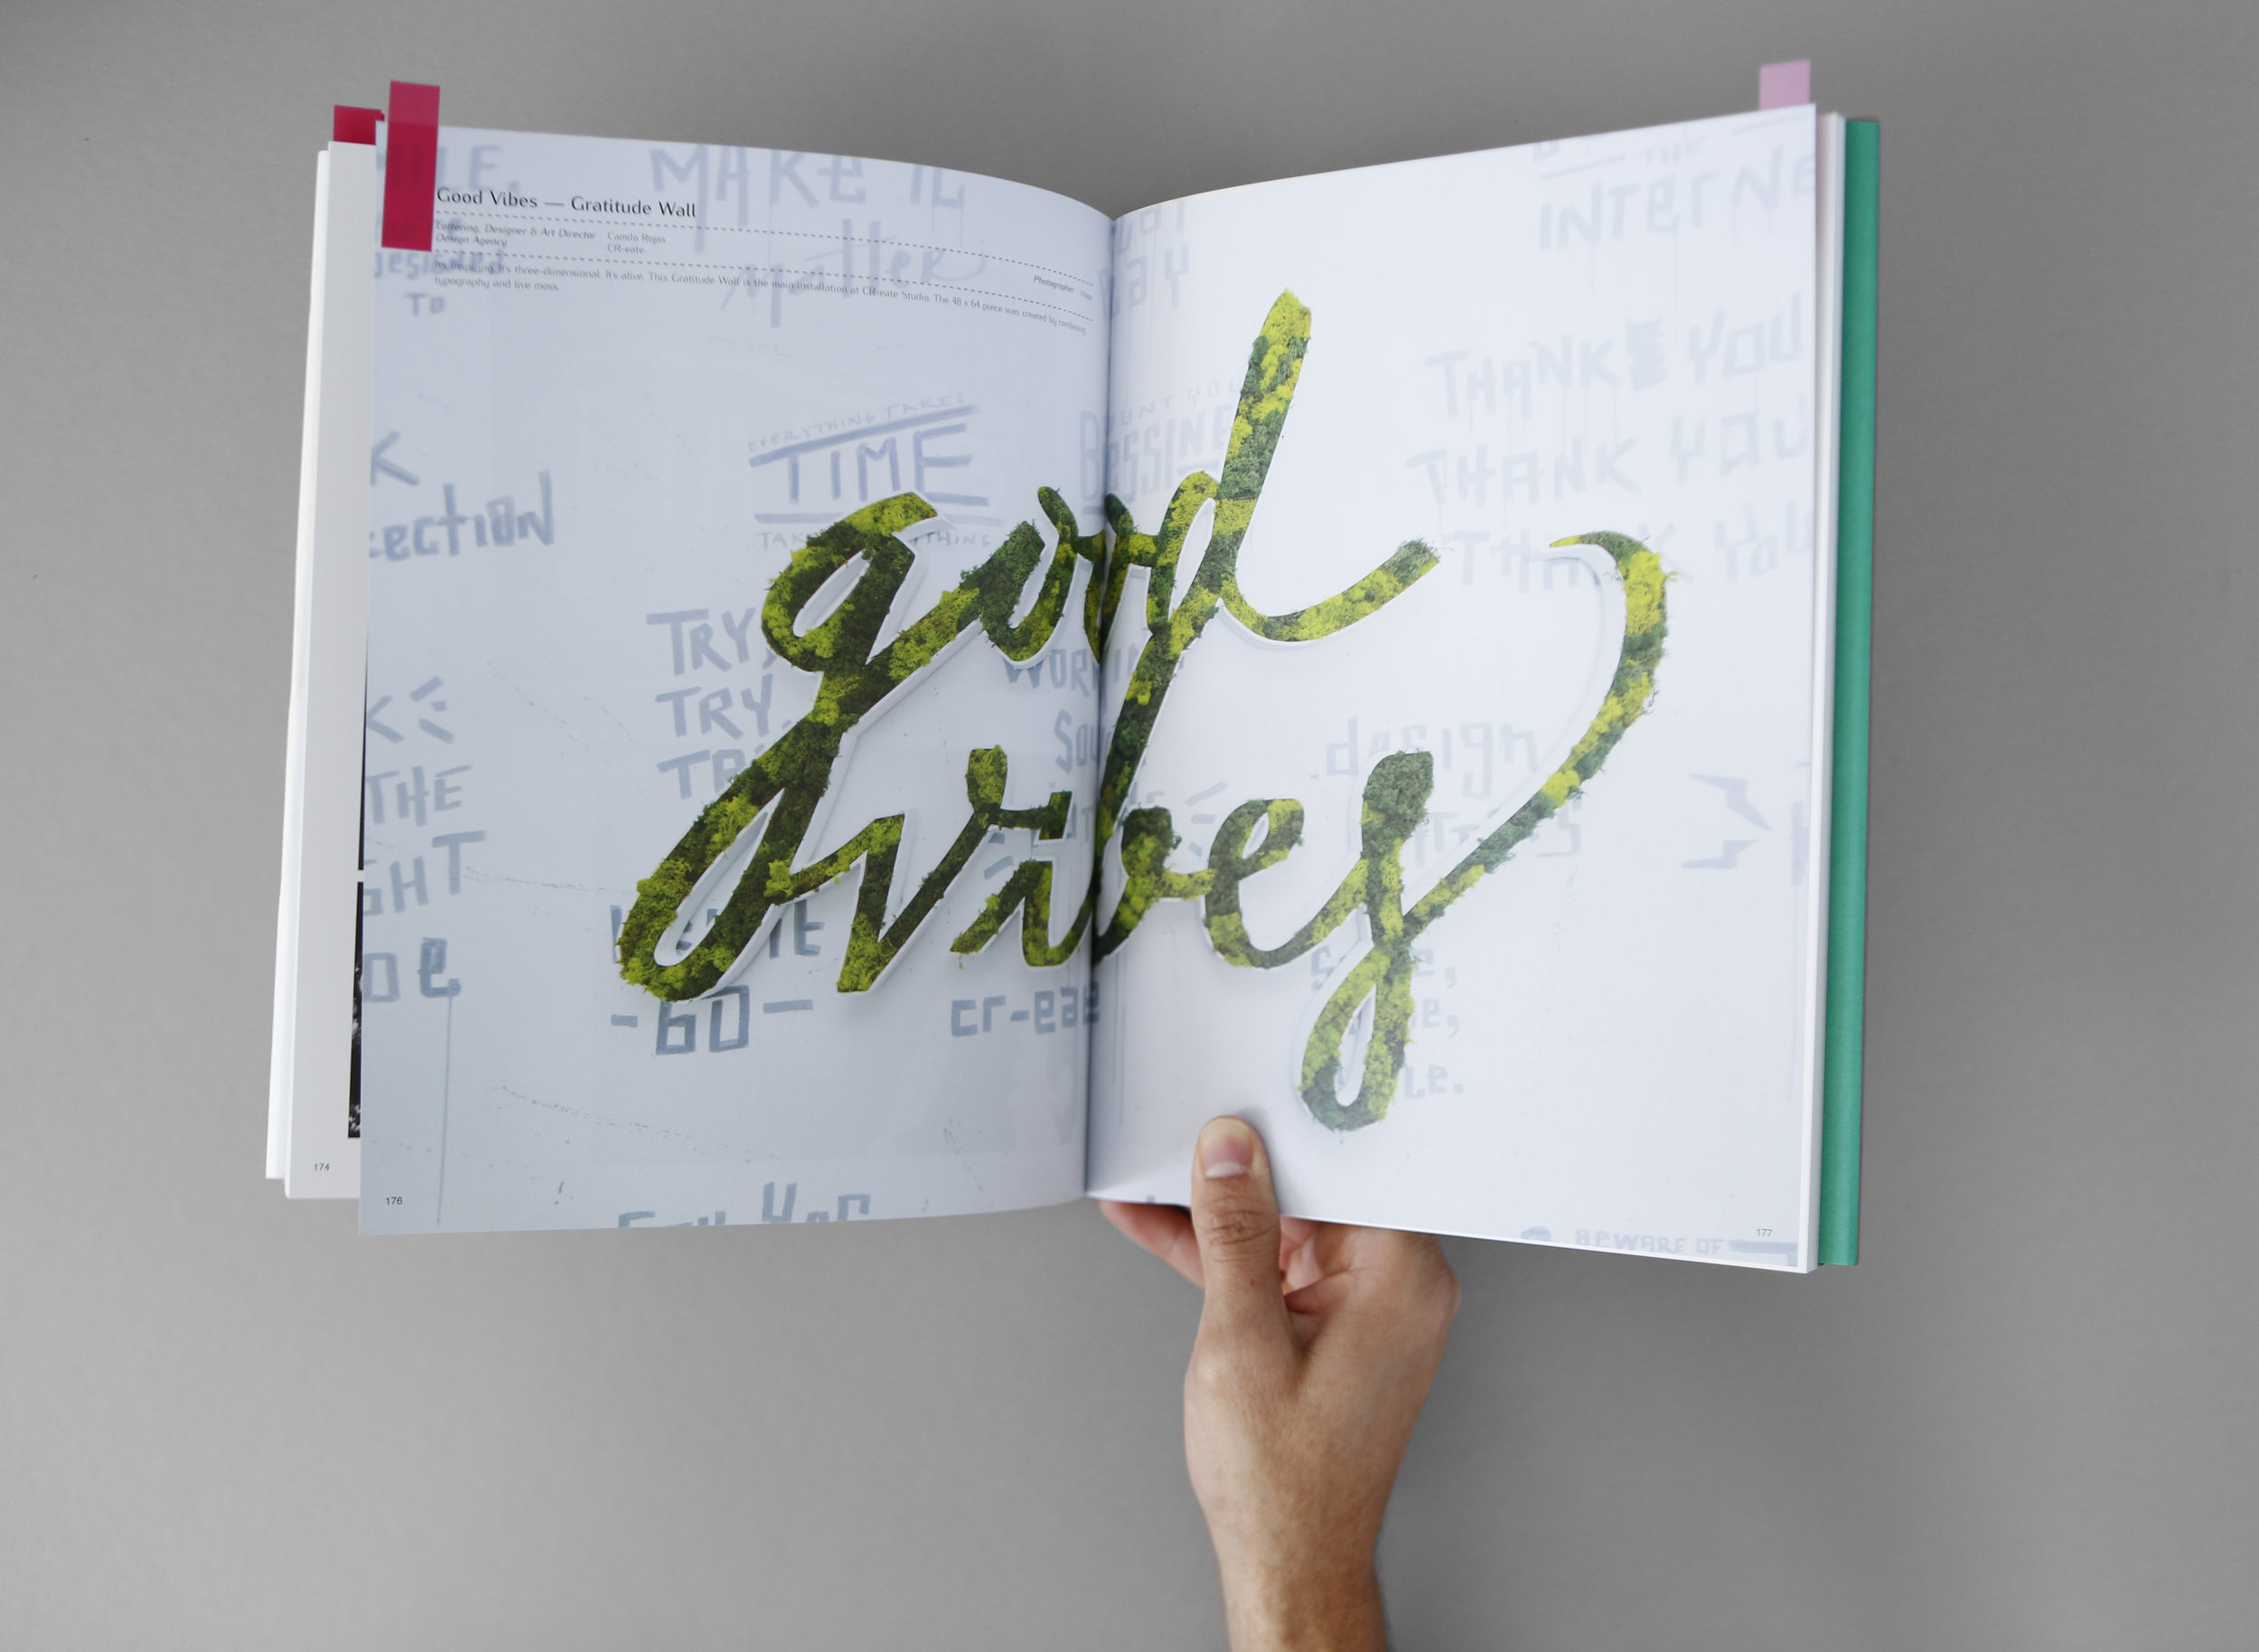 the-making-of-artistic-typeface (5).jpg